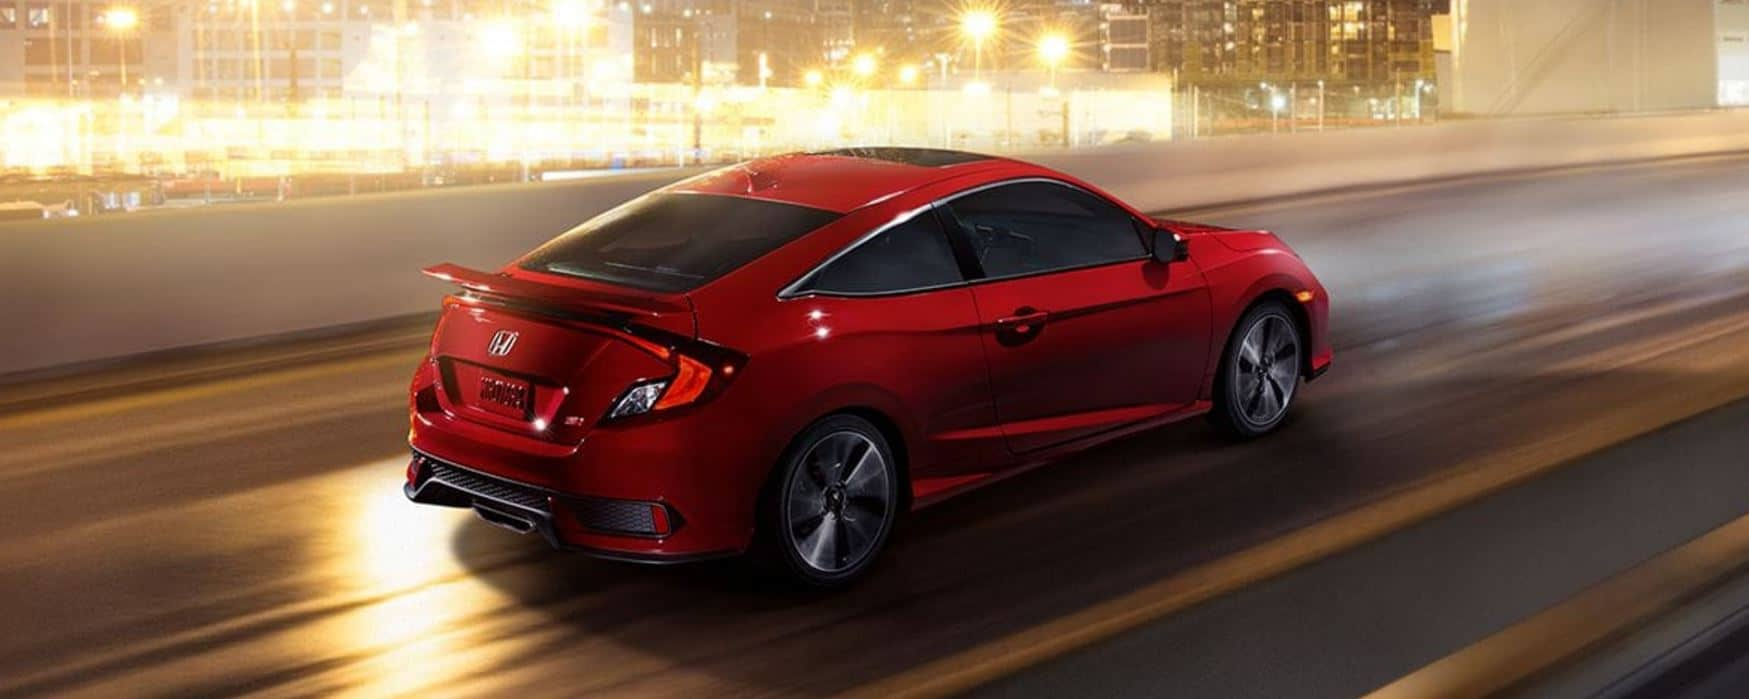 2017 honda civic si coupe and sedan on sale now formula honda. Black Bedroom Furniture Sets. Home Design Ideas